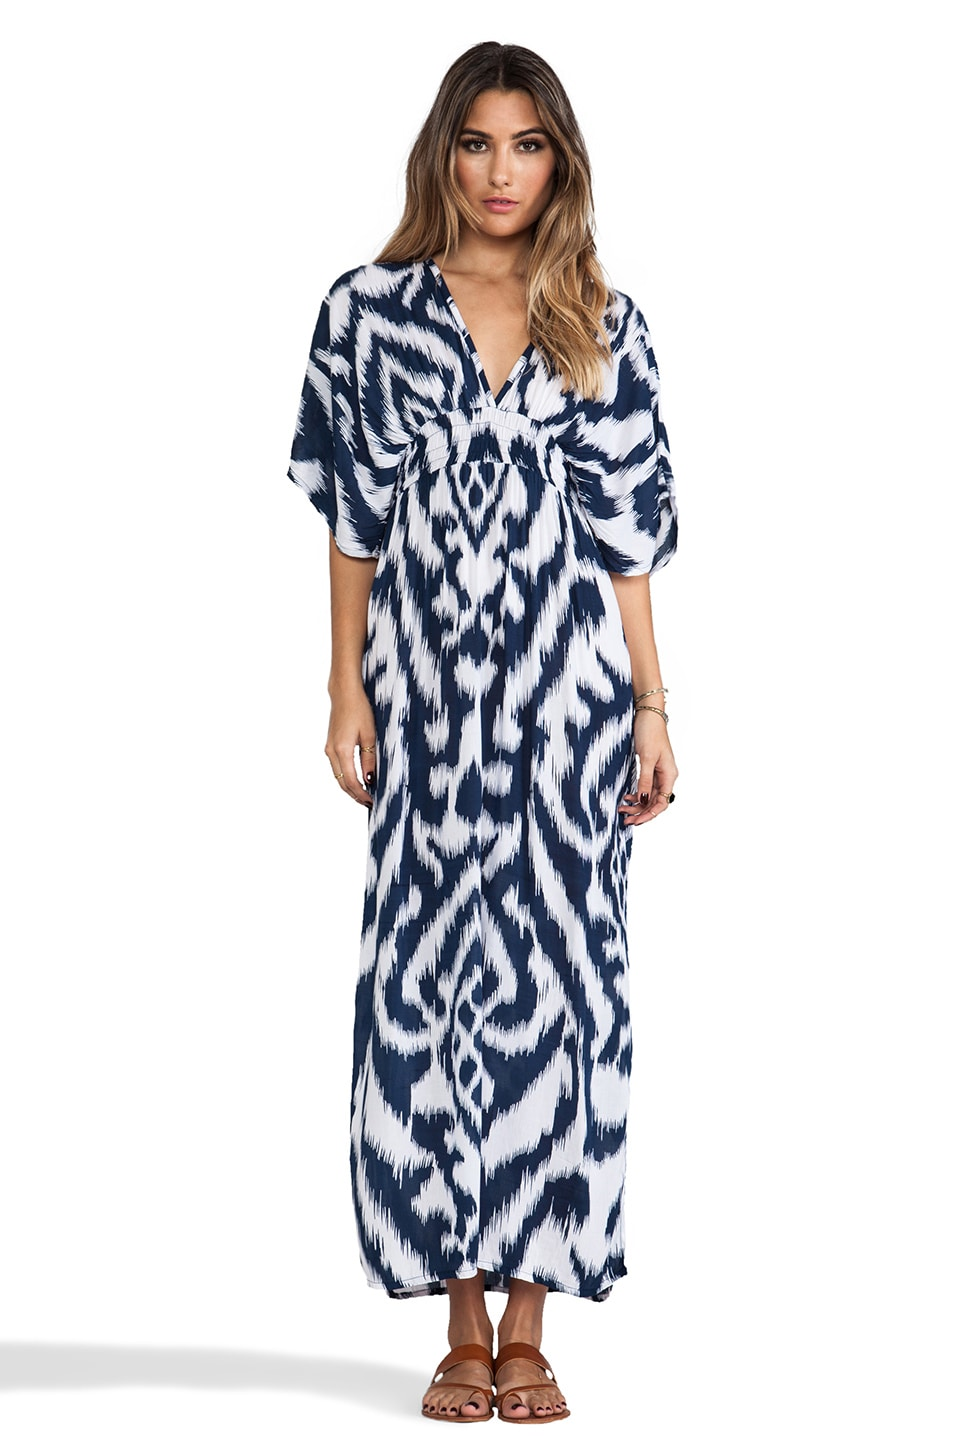 Tiare Hawaii Haiku Maxi Dress in Navy Balinese